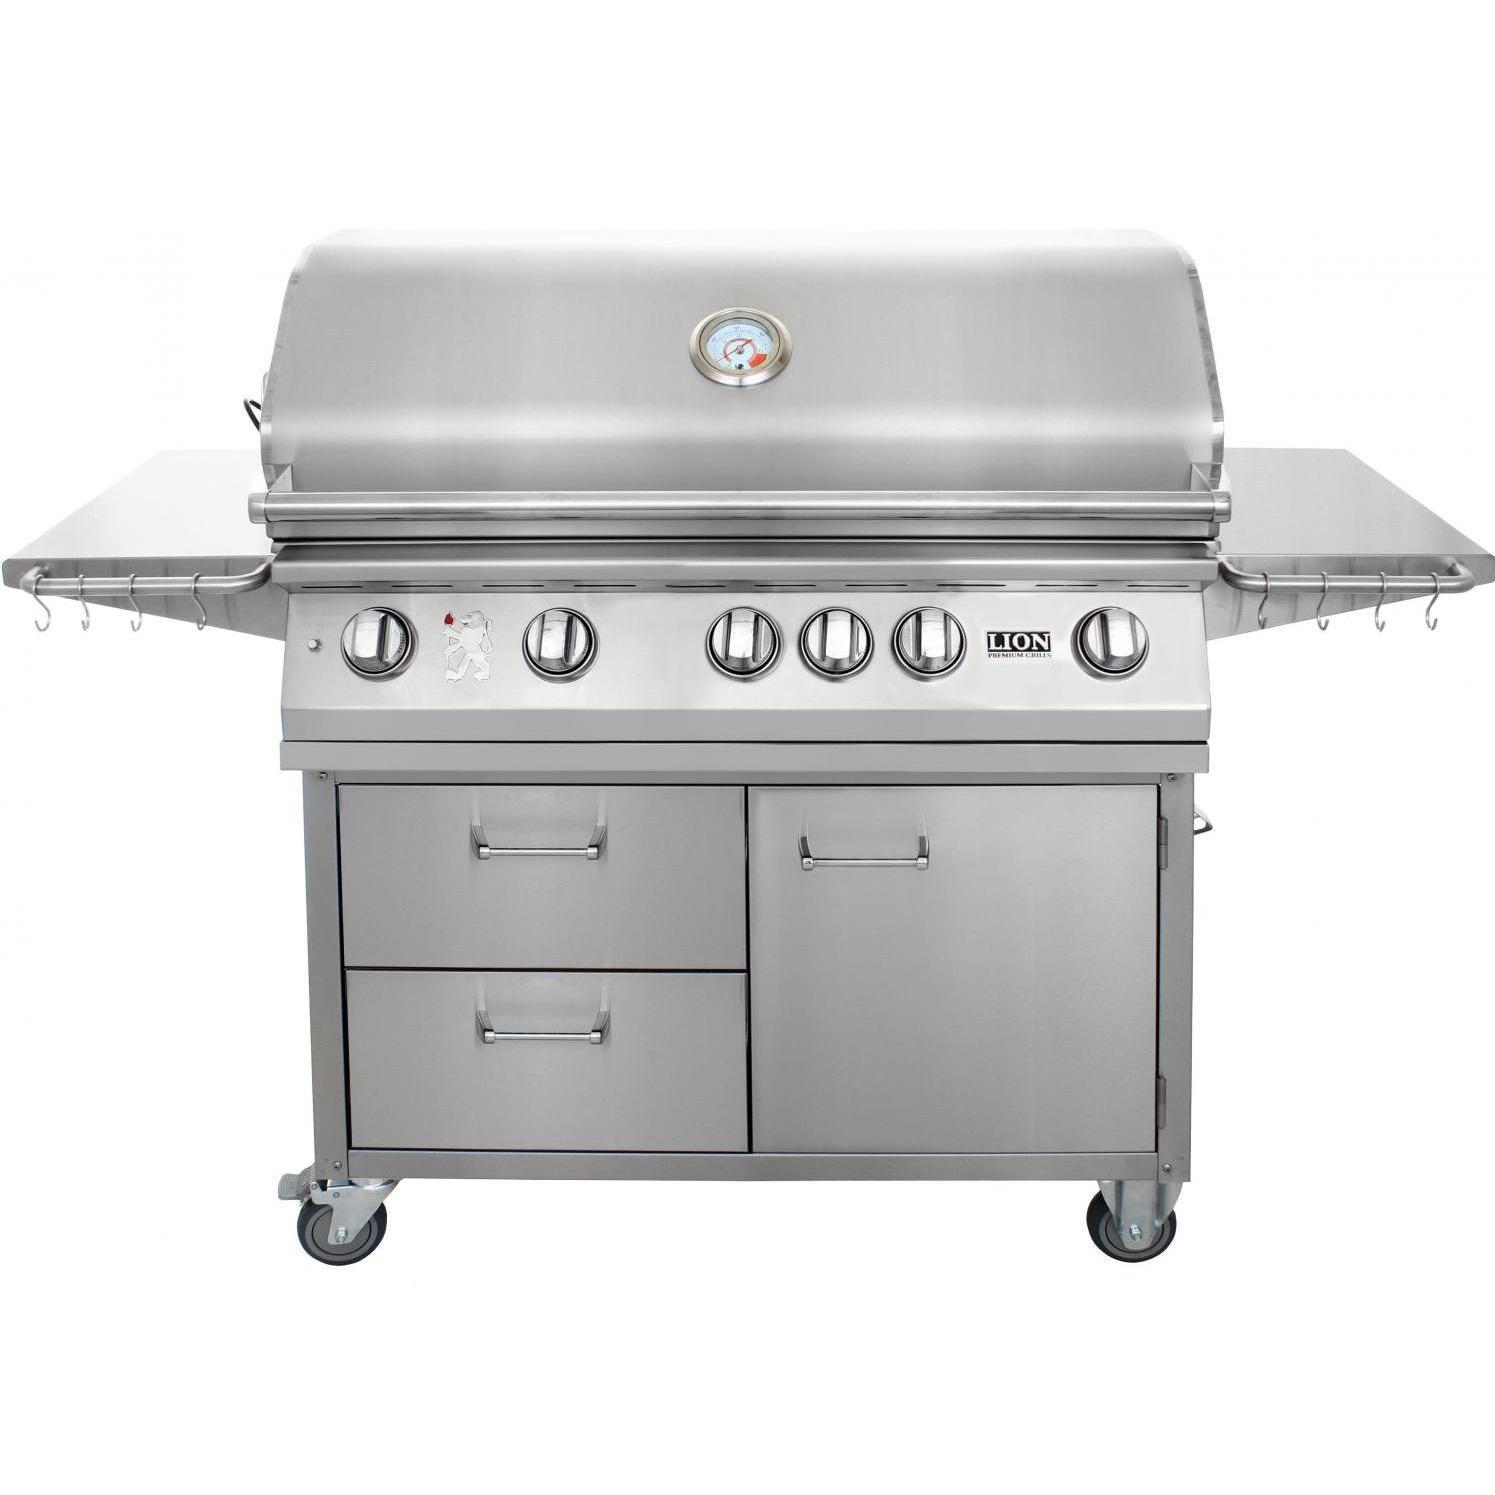 lion 40 inch gas grill l90000 stainless steel freestanding